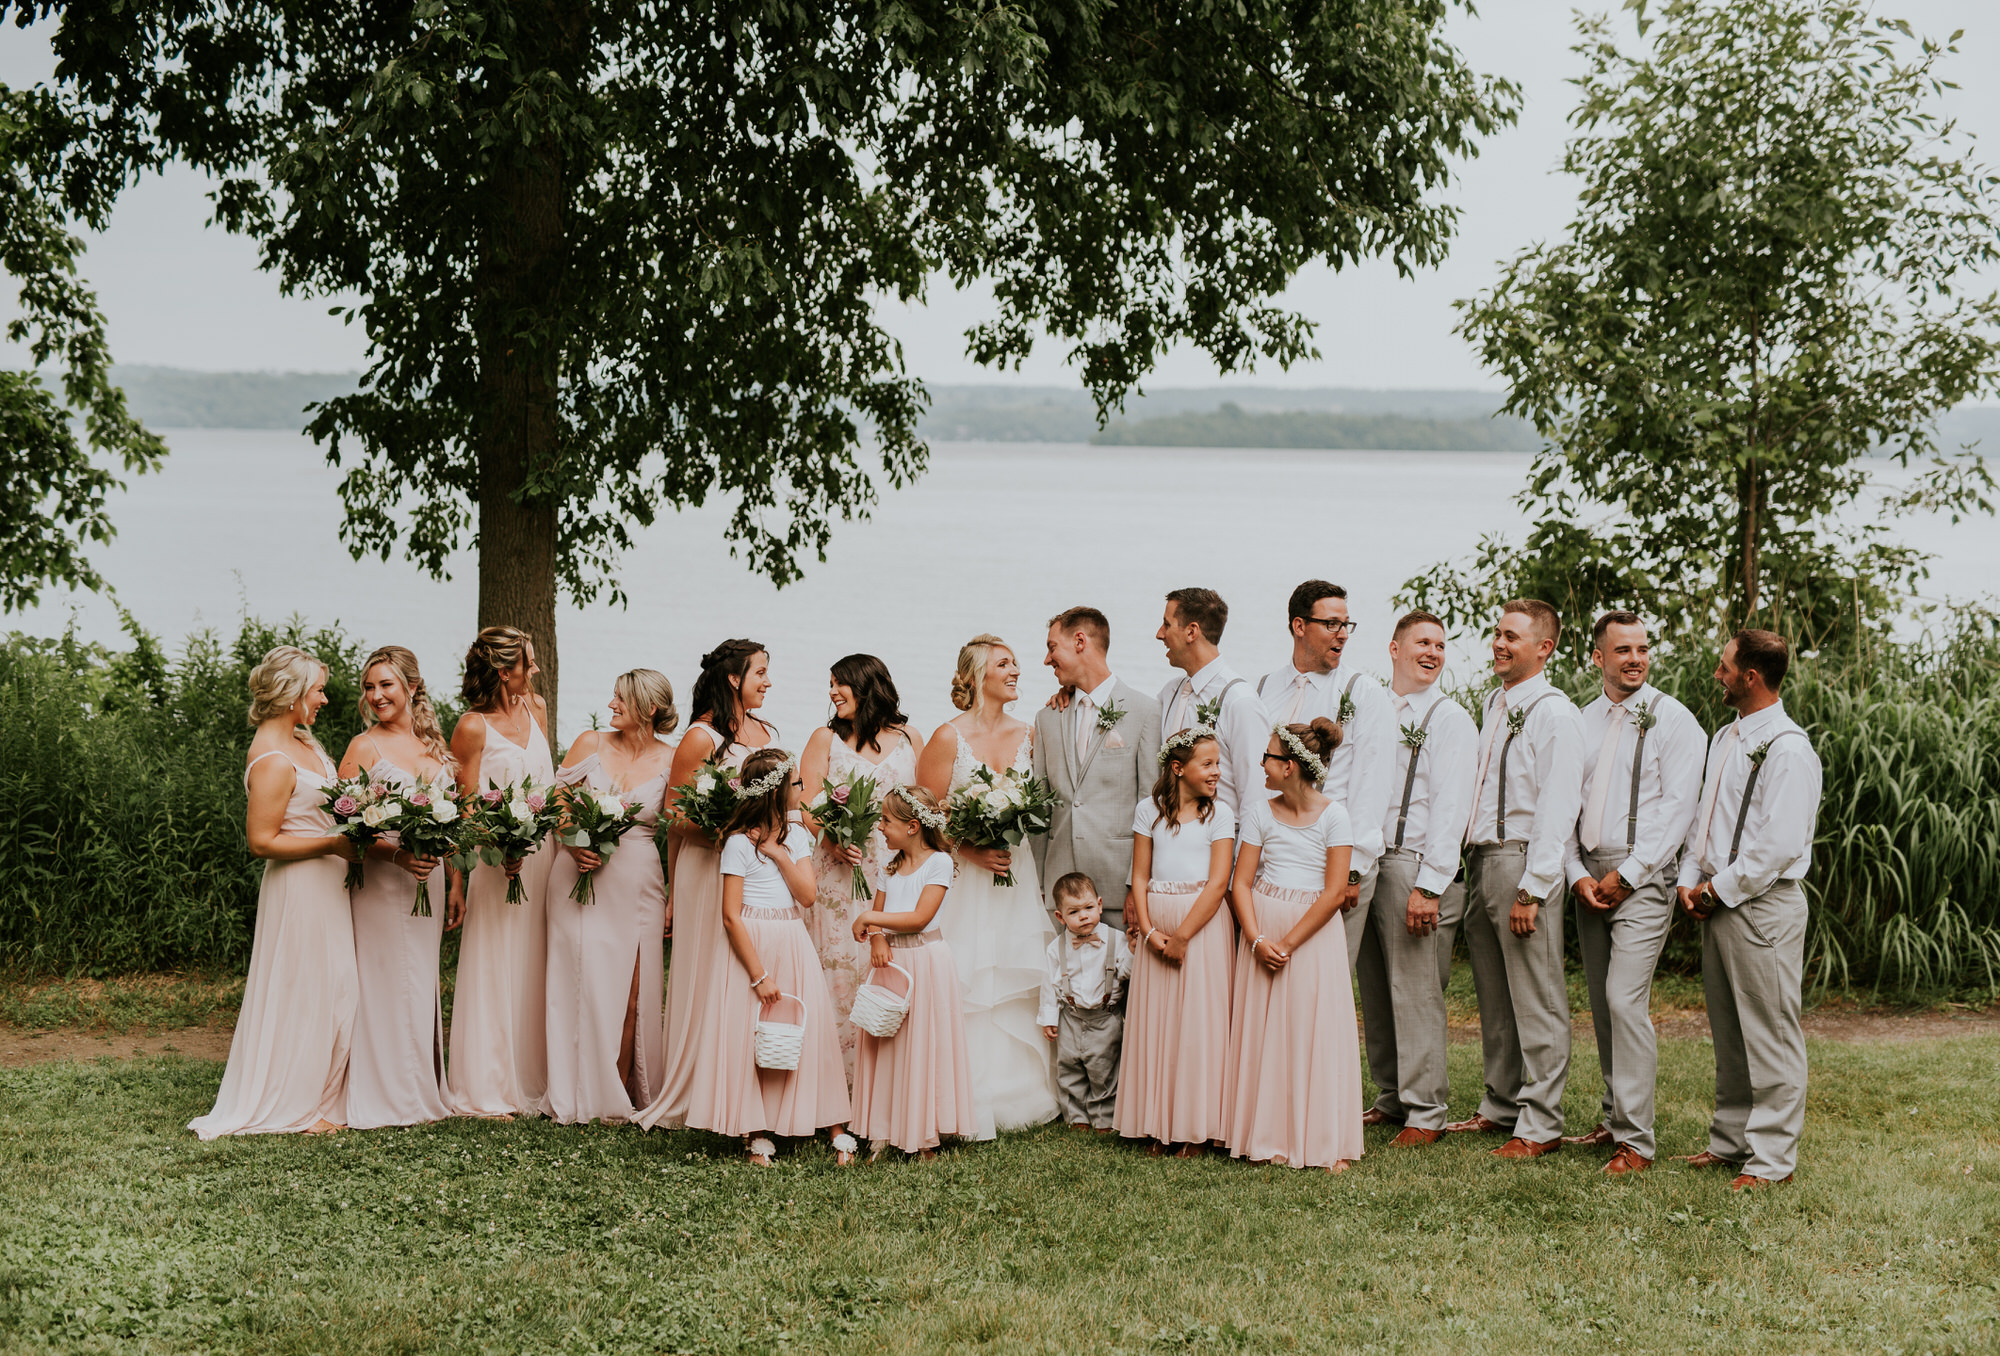 Elmhirst Resort Wedding - wedding party portrait